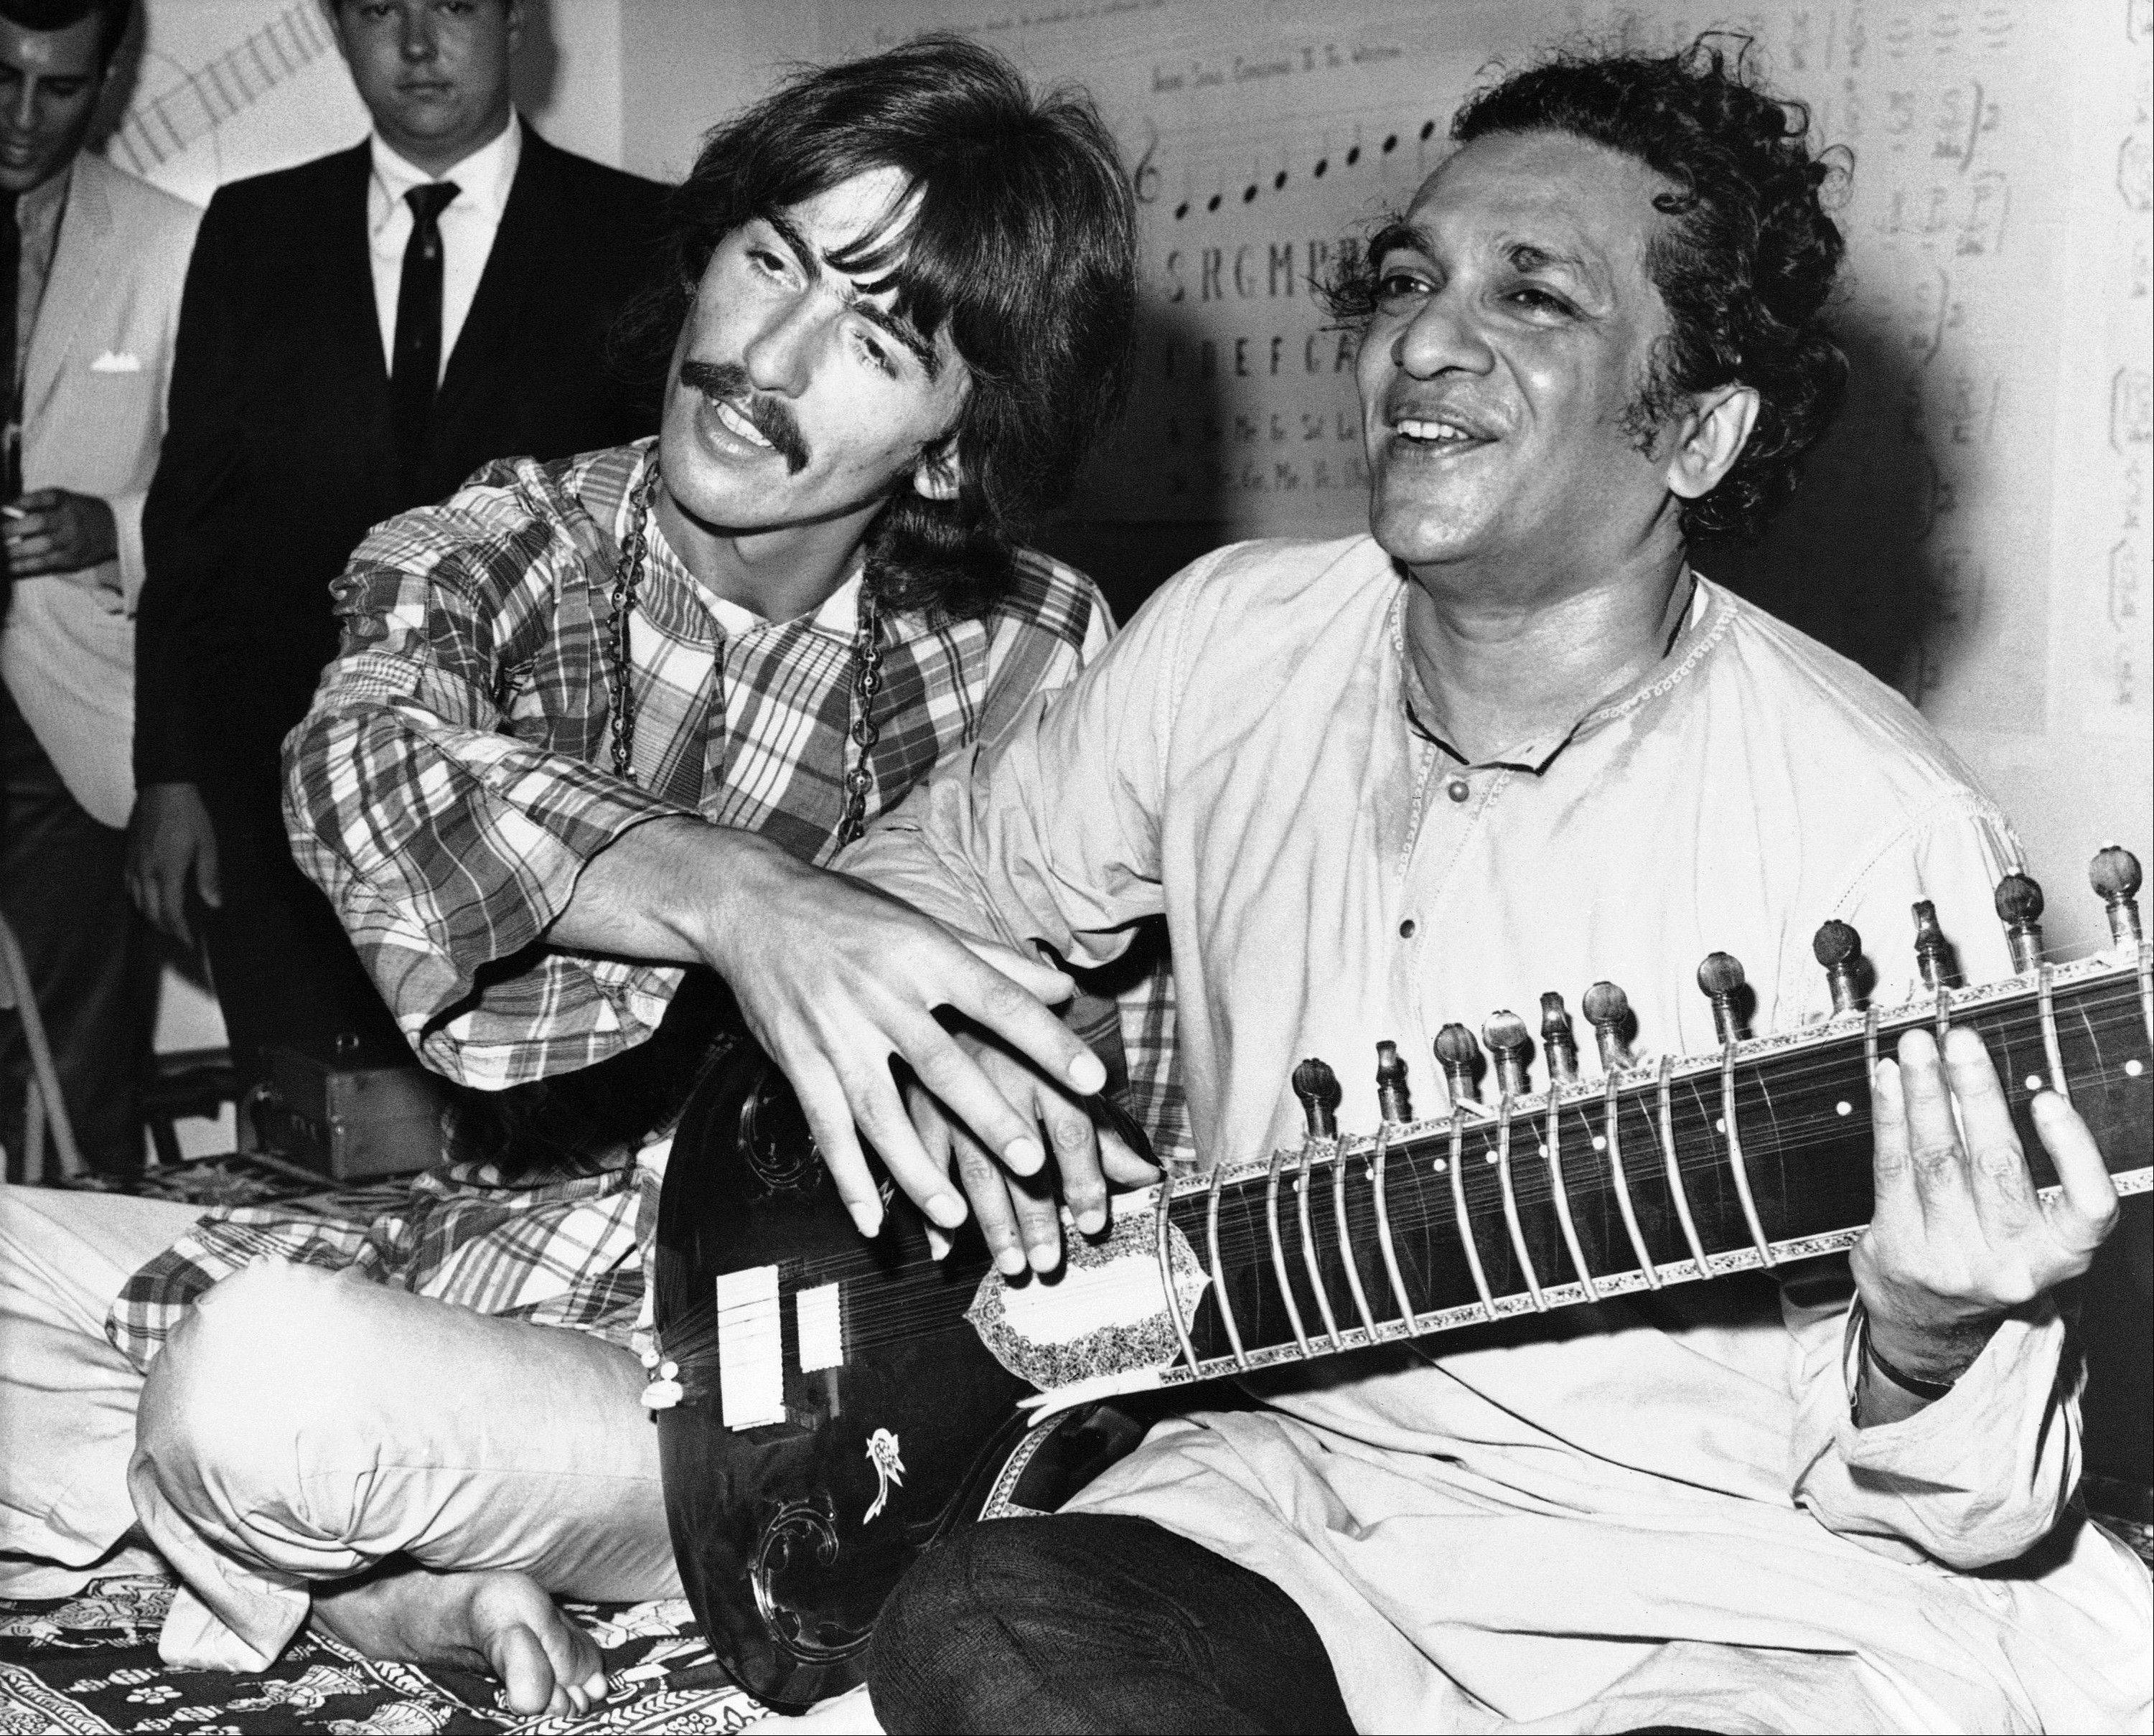 In this Aug. 3, 1967 file photo, George Harrison, of the Beatles, left, sits cross-legged with his musical mentor, Ravi Shankar of India, in Los Angeles, as Harrison explains to newsmen that Shankar is teaching him to play the sitar. Shankar, the sitar virtuoso who became a hippie musical icon of the 1960s after hobnobbing with the Beatles and who introduced traditional Indian ragas to Western audiences over an eight-decade career, died Tuesday. He was 92.